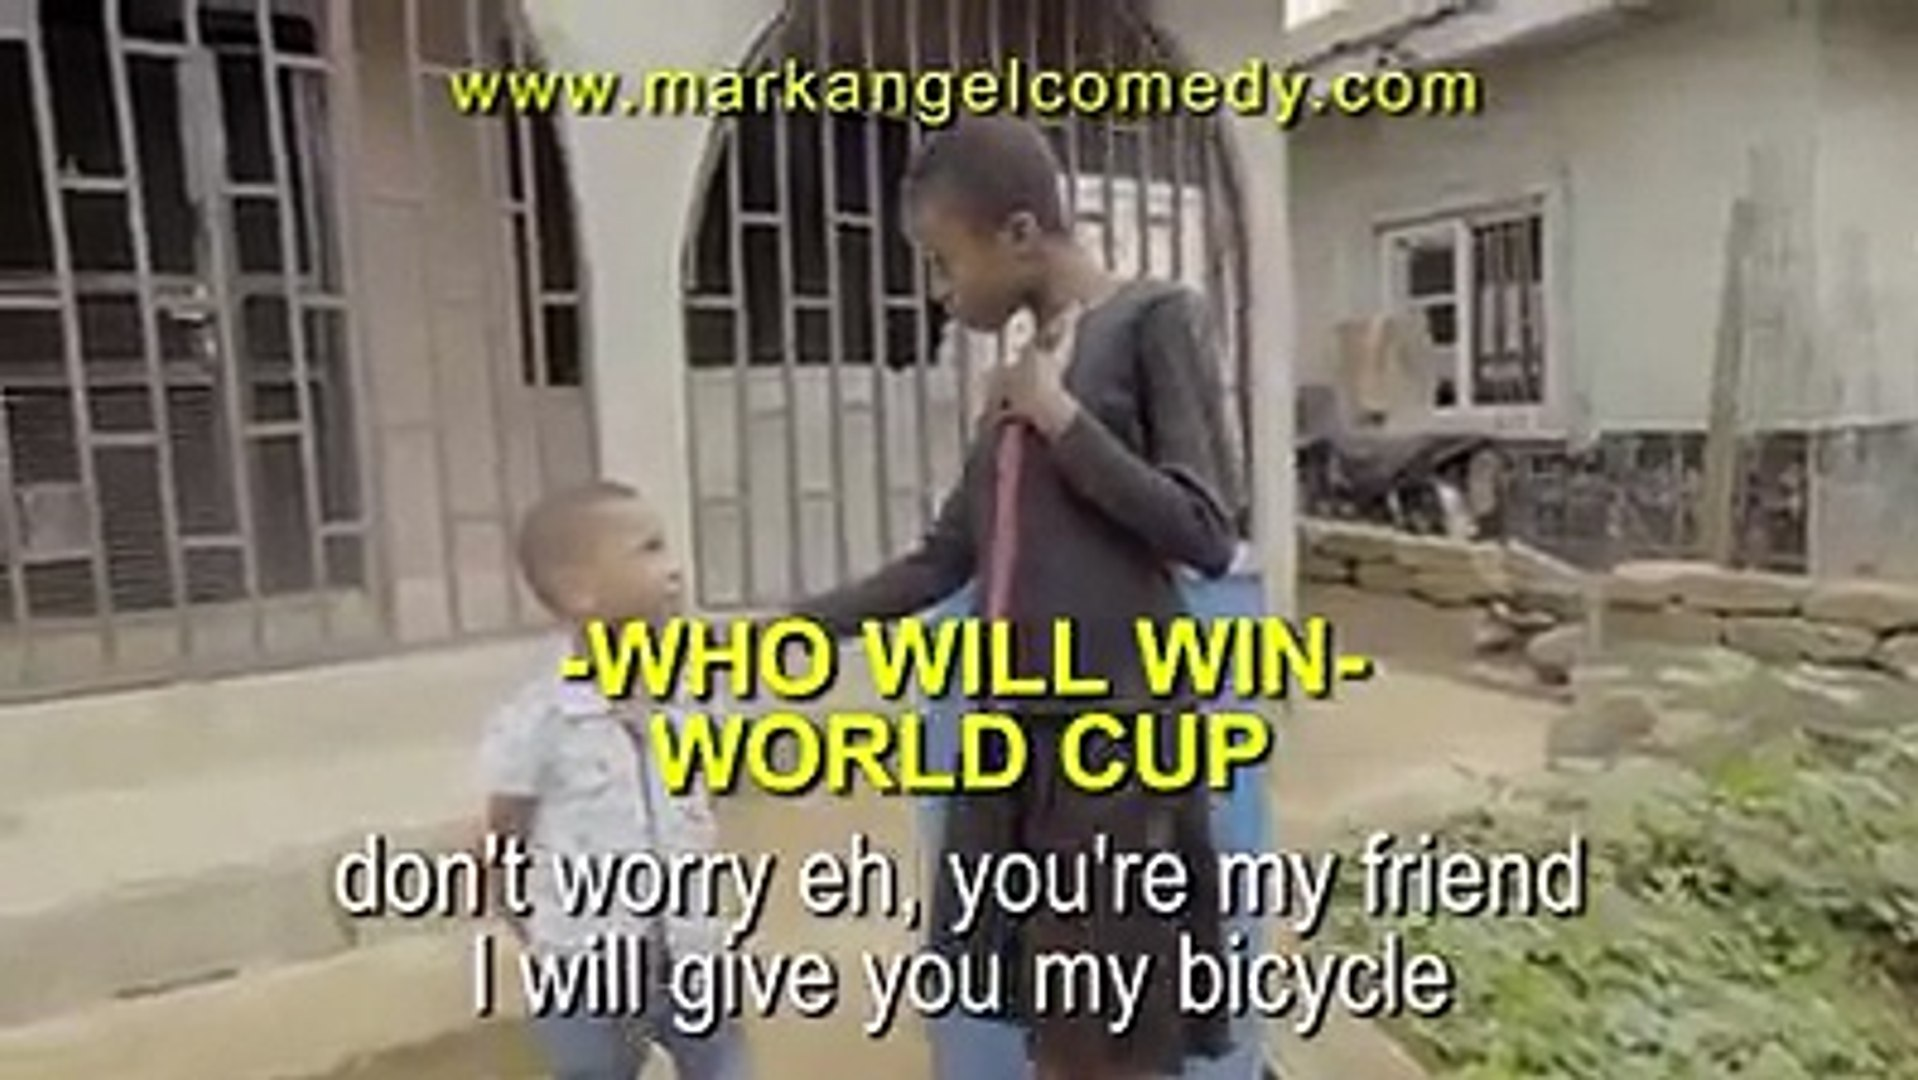 Aunty Success is a clown! This VERY FUNNY MARK ANGEL COMEDY will make you laugh for a long time.